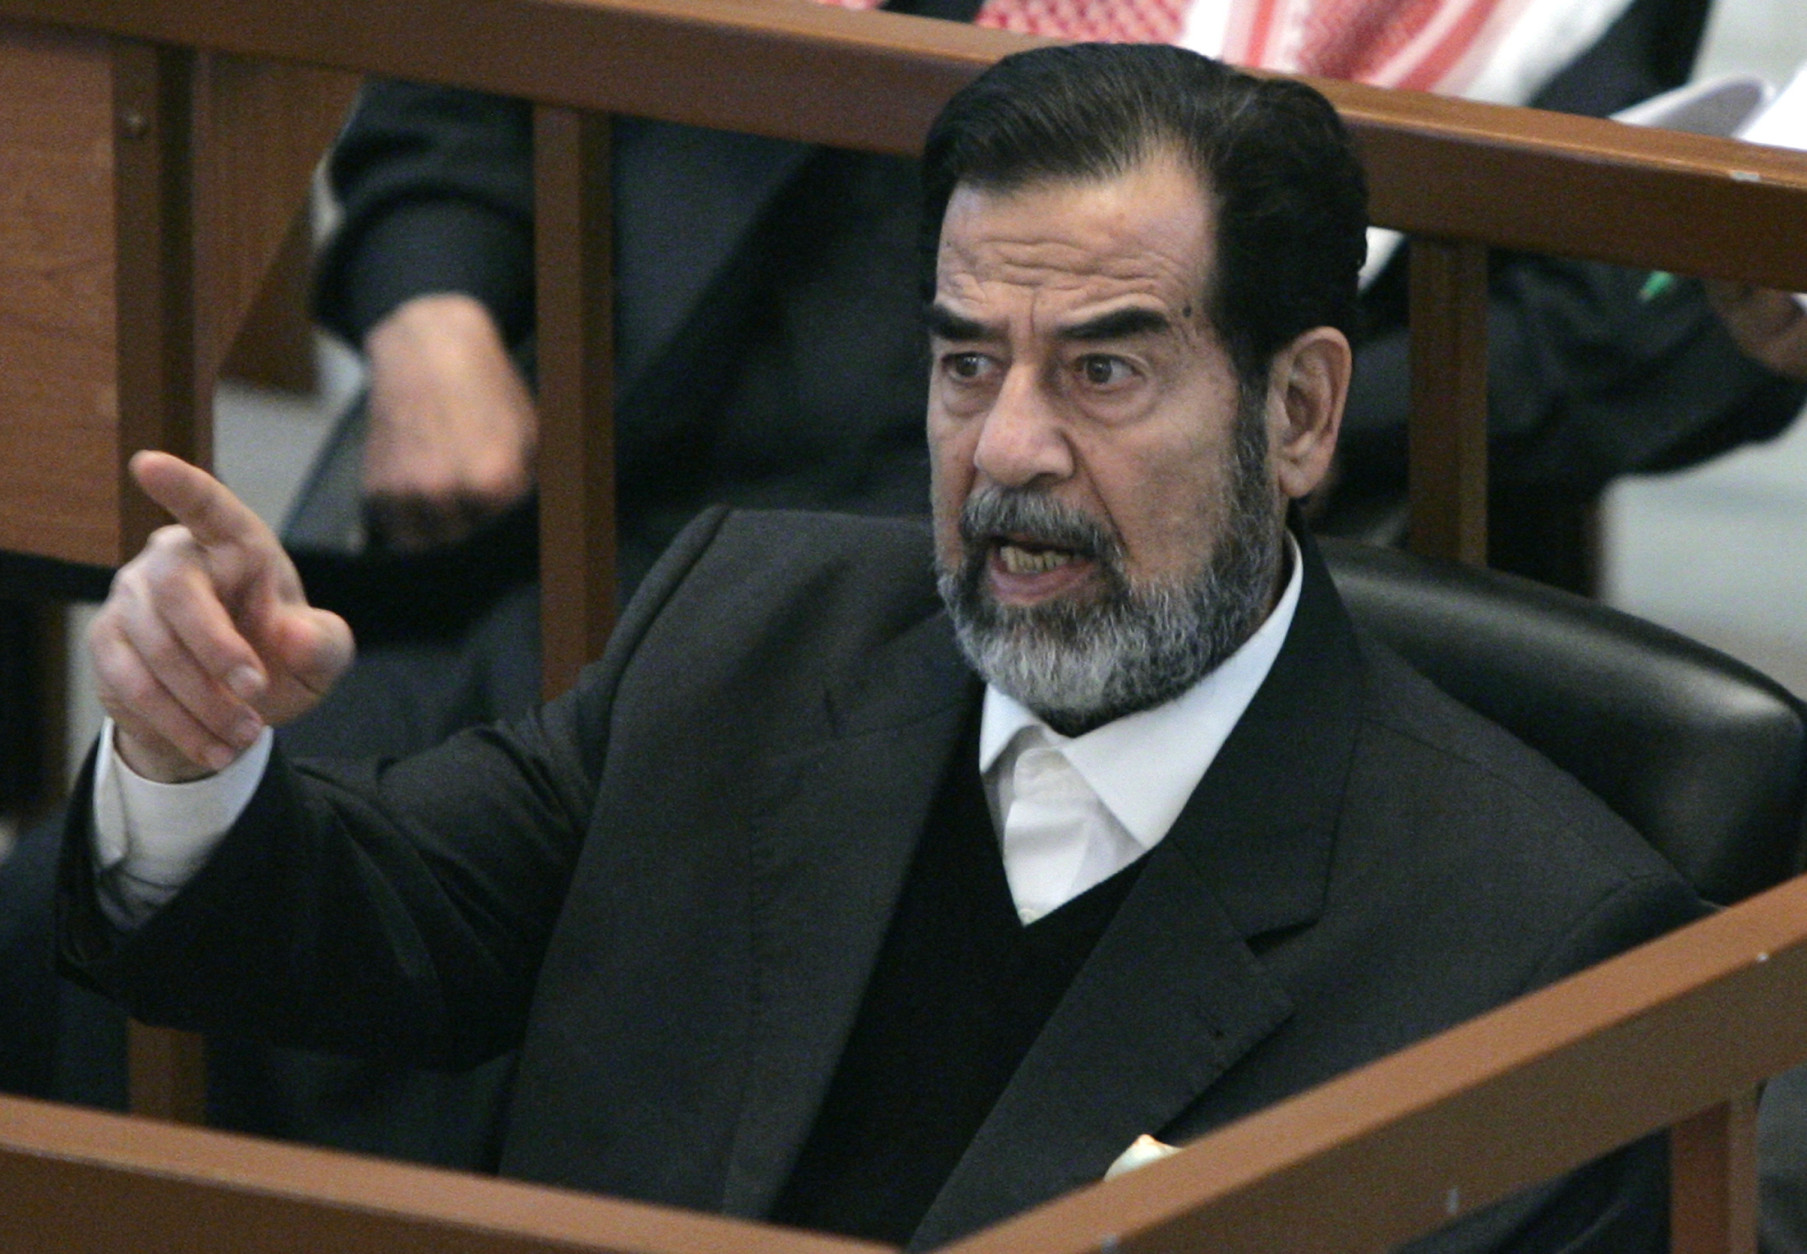 **FILE**  Former Iraqi President Saddam Hussein reacts in court while listening to the prosecution, during the Anfal genocide trial in Baghdad, Iraq, in this Dec. 21, 2006 file photo.  Some Arab media are reporting, Saturday morning, Dec. 30, 2006, that Saddam Hussein has been executed. The Associated Press is seeking confirmation. (AP Photo / Nikola Solic, pool, file)